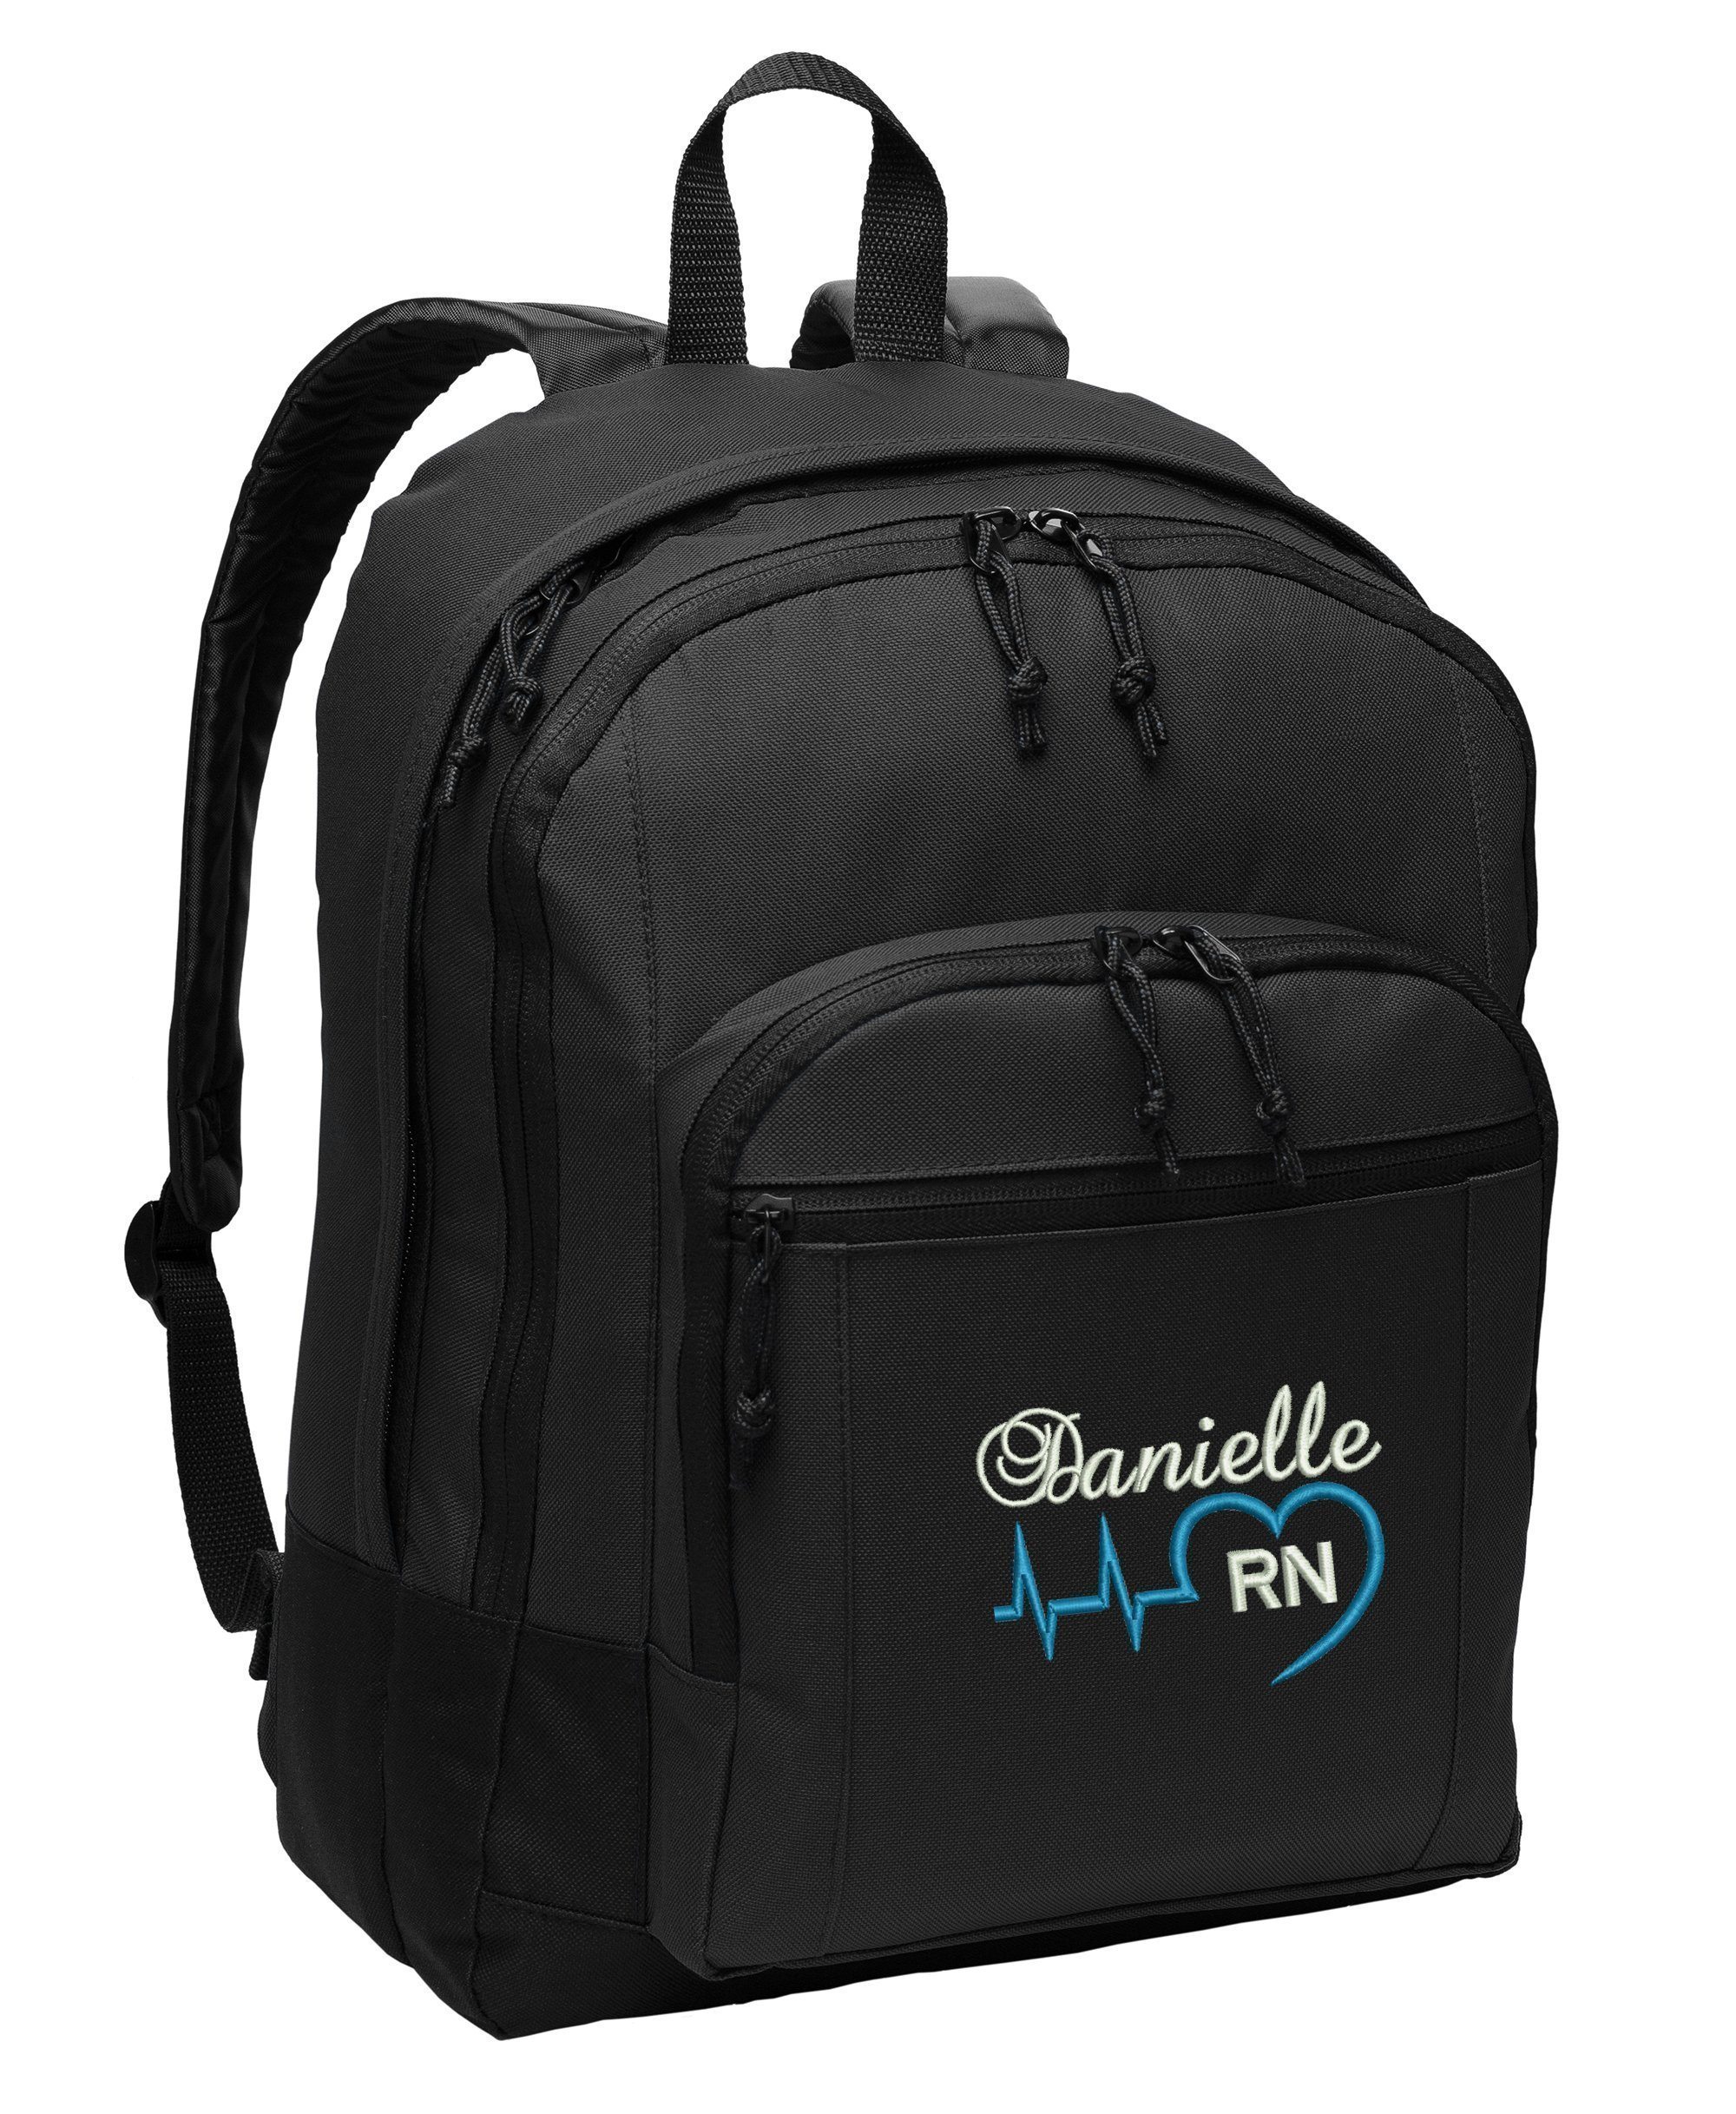 Heart Beat Nurse, RN, LPN, CNA, Medical Personnel Personalized Embroidered Back Pack